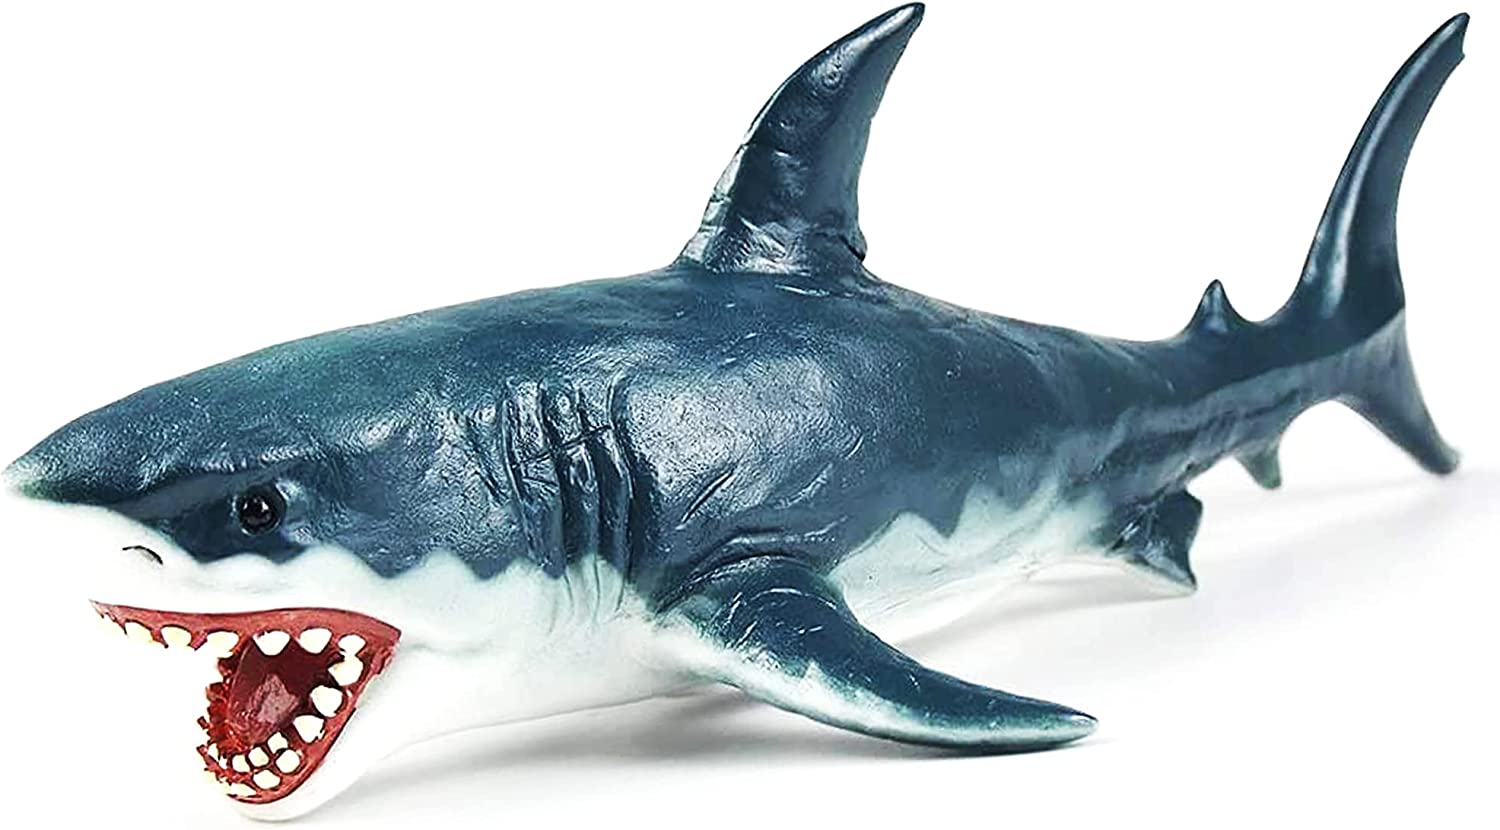 Large Shark Toys for Boys White Limited time sale Great Toy Action Megalodon price